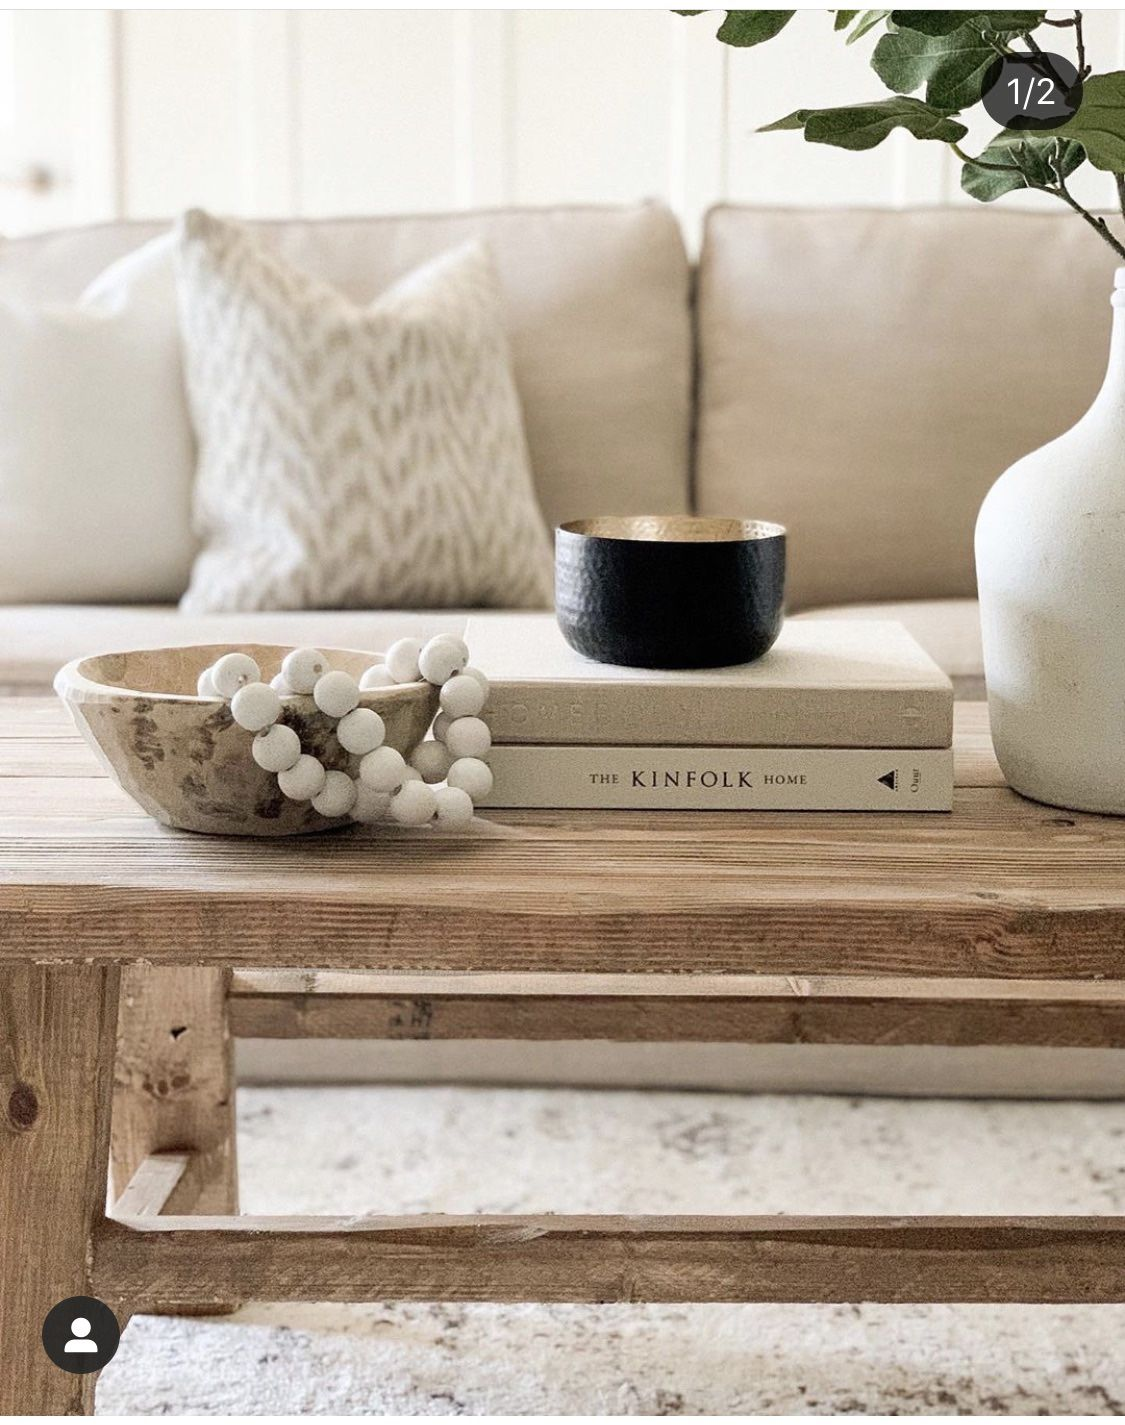 Pin By Katie Mccauley On Home Inspiration Home Decor Coffee Table Decor